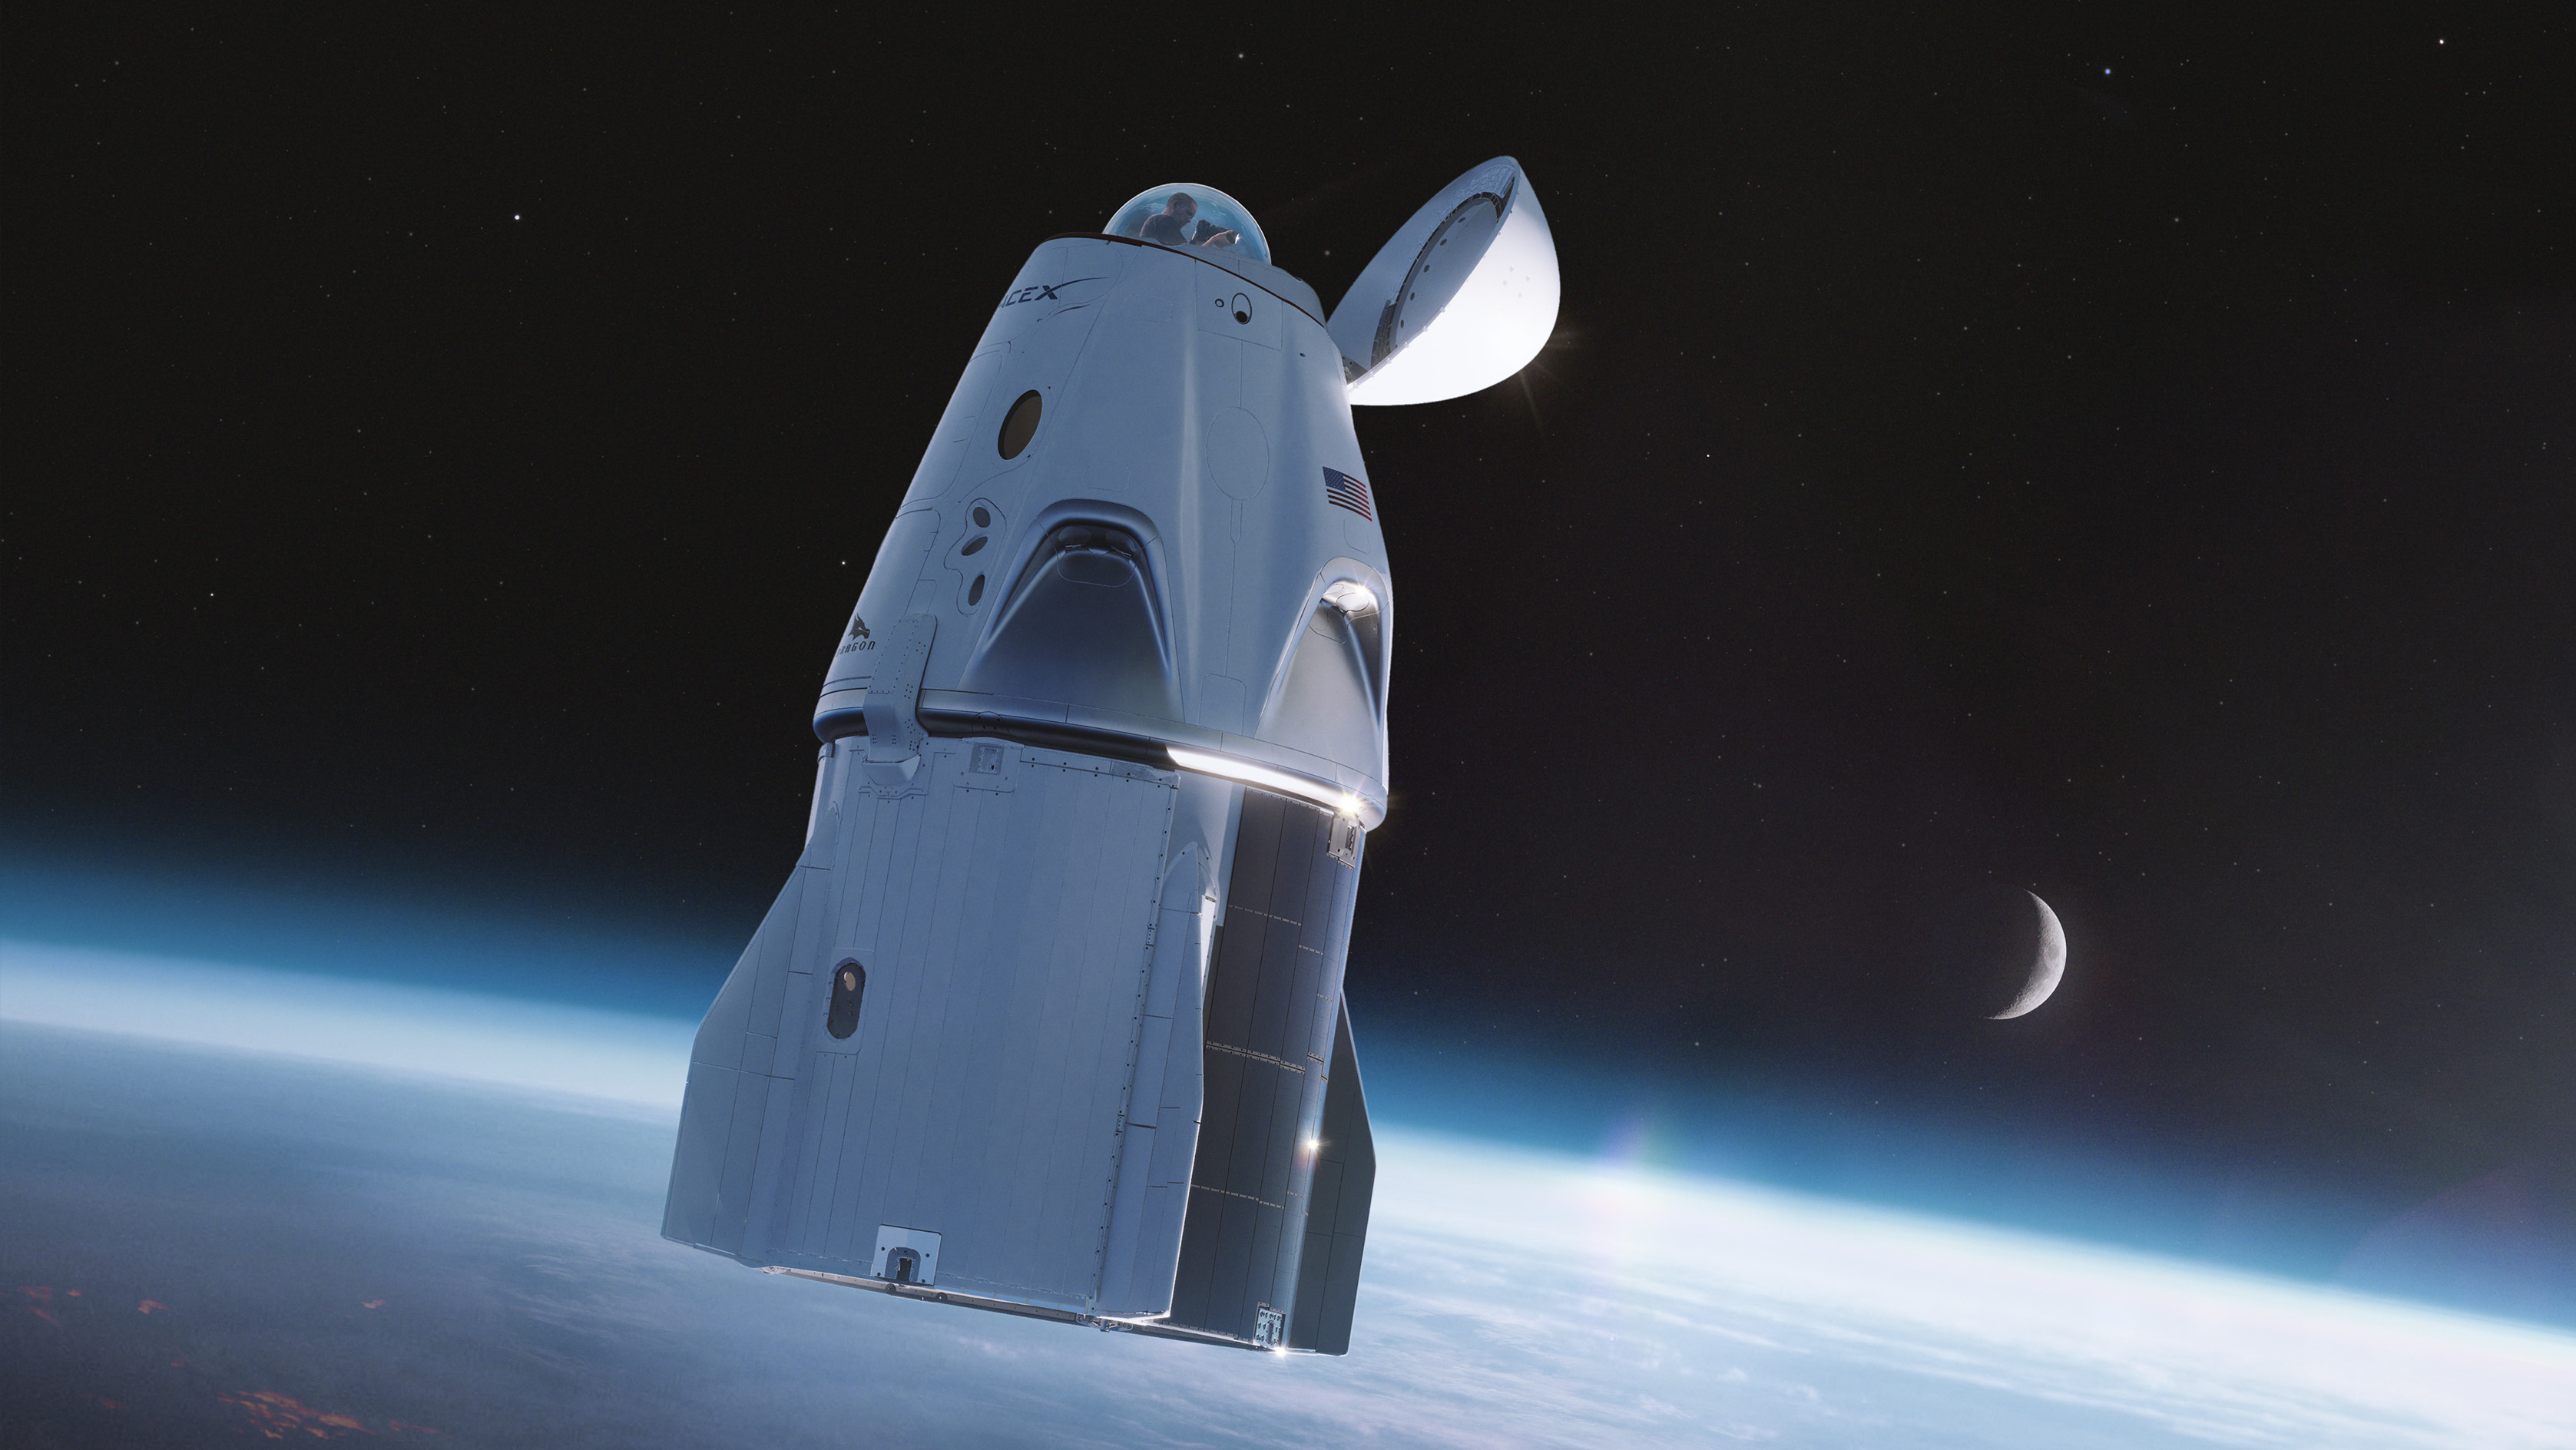 SpaceX Inspiration4 all-civilian launch set for today: How to watch the historic flight live